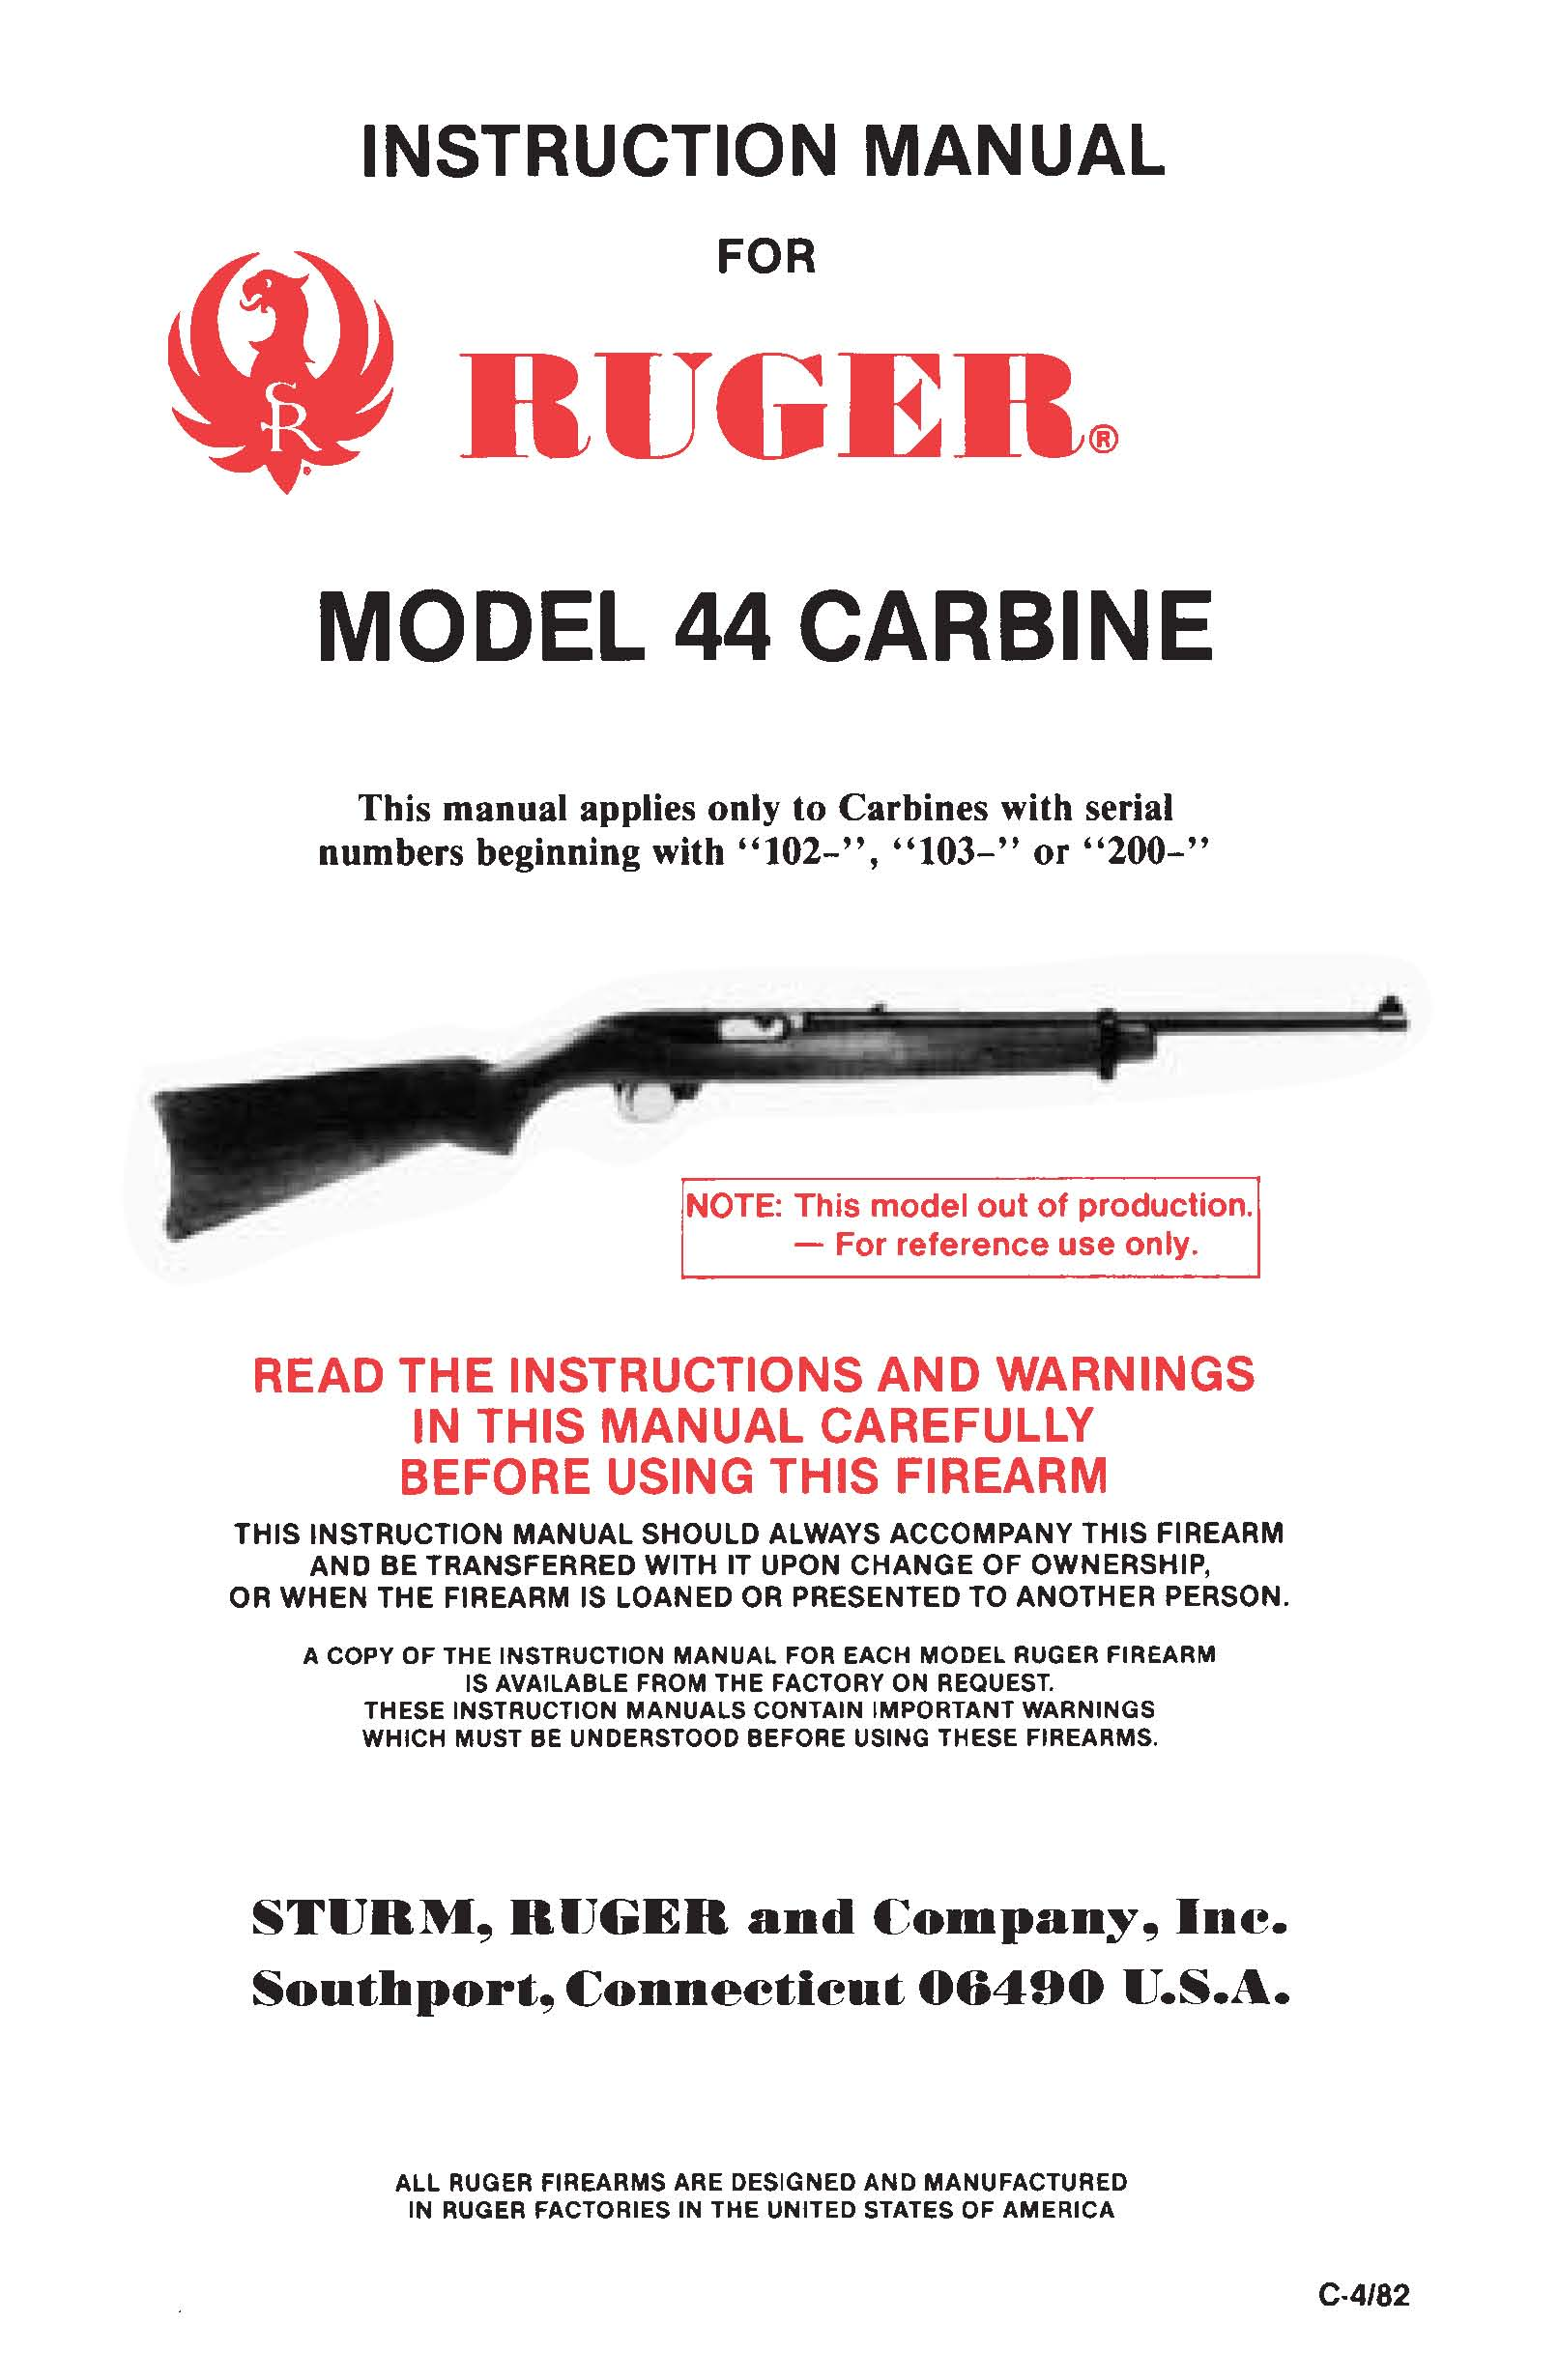 ... Ruger Model 44 Carbine Serial #s starting with 102, 103 or 200  Operations manual